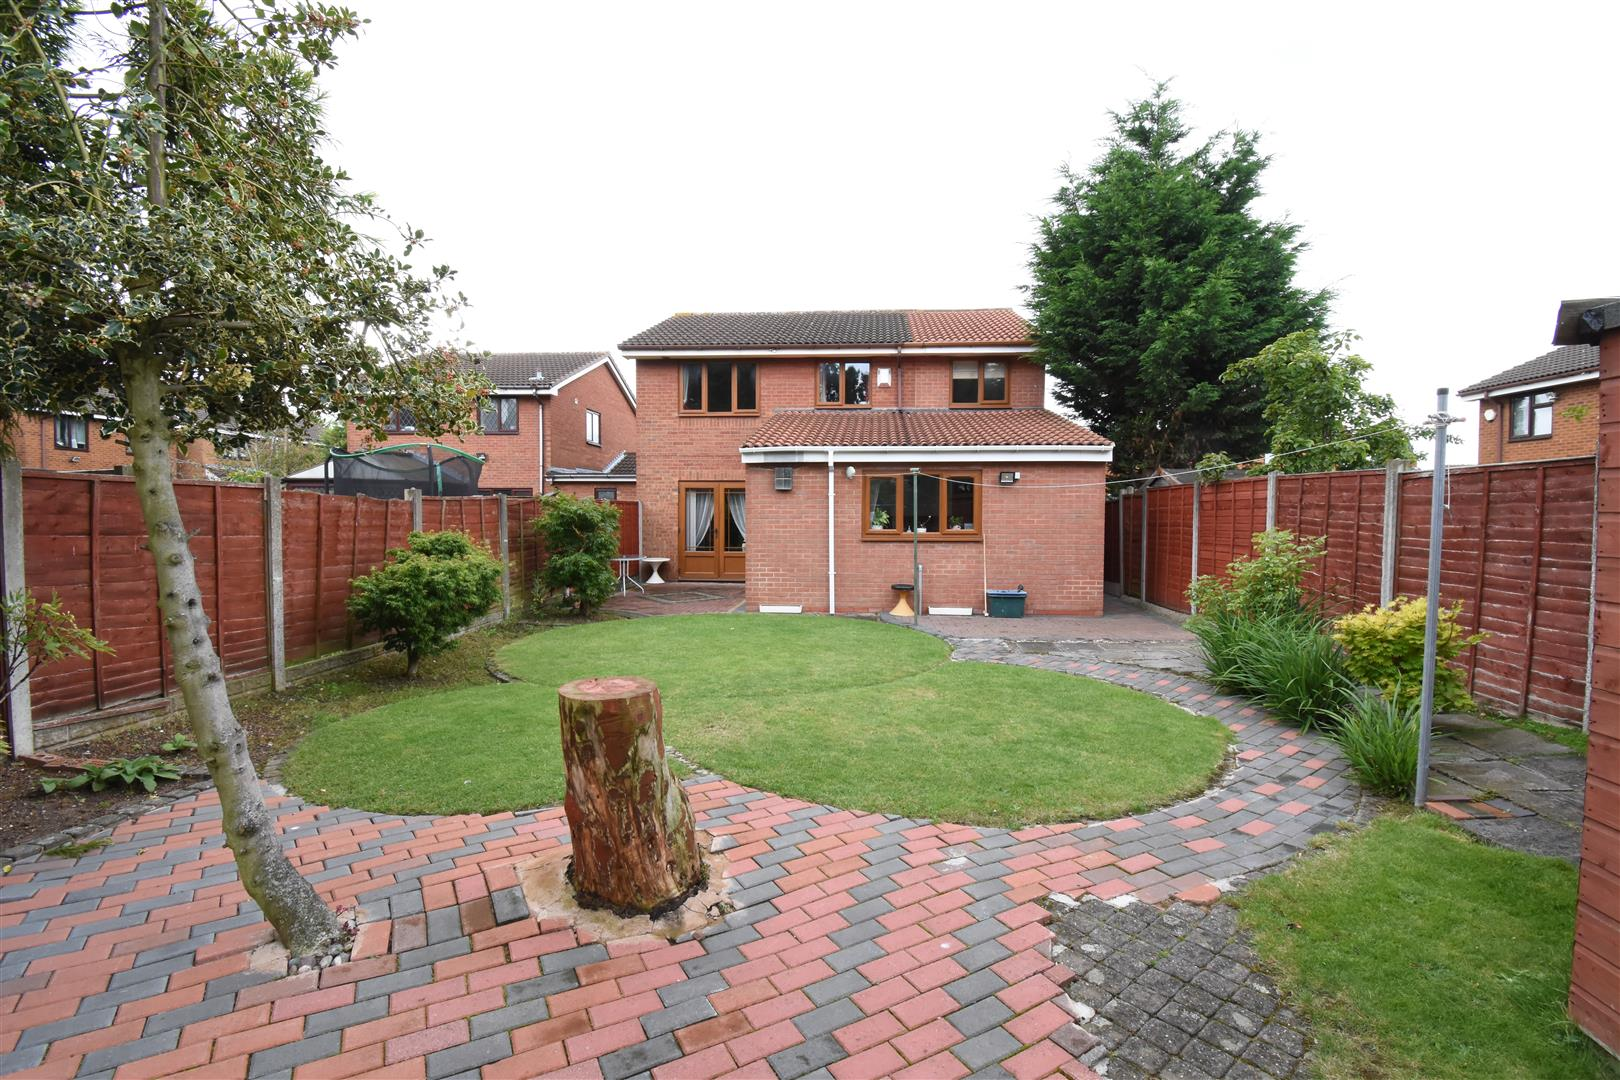 5 bed house for sale in Johnson Close, Ward End, Birmingham 17